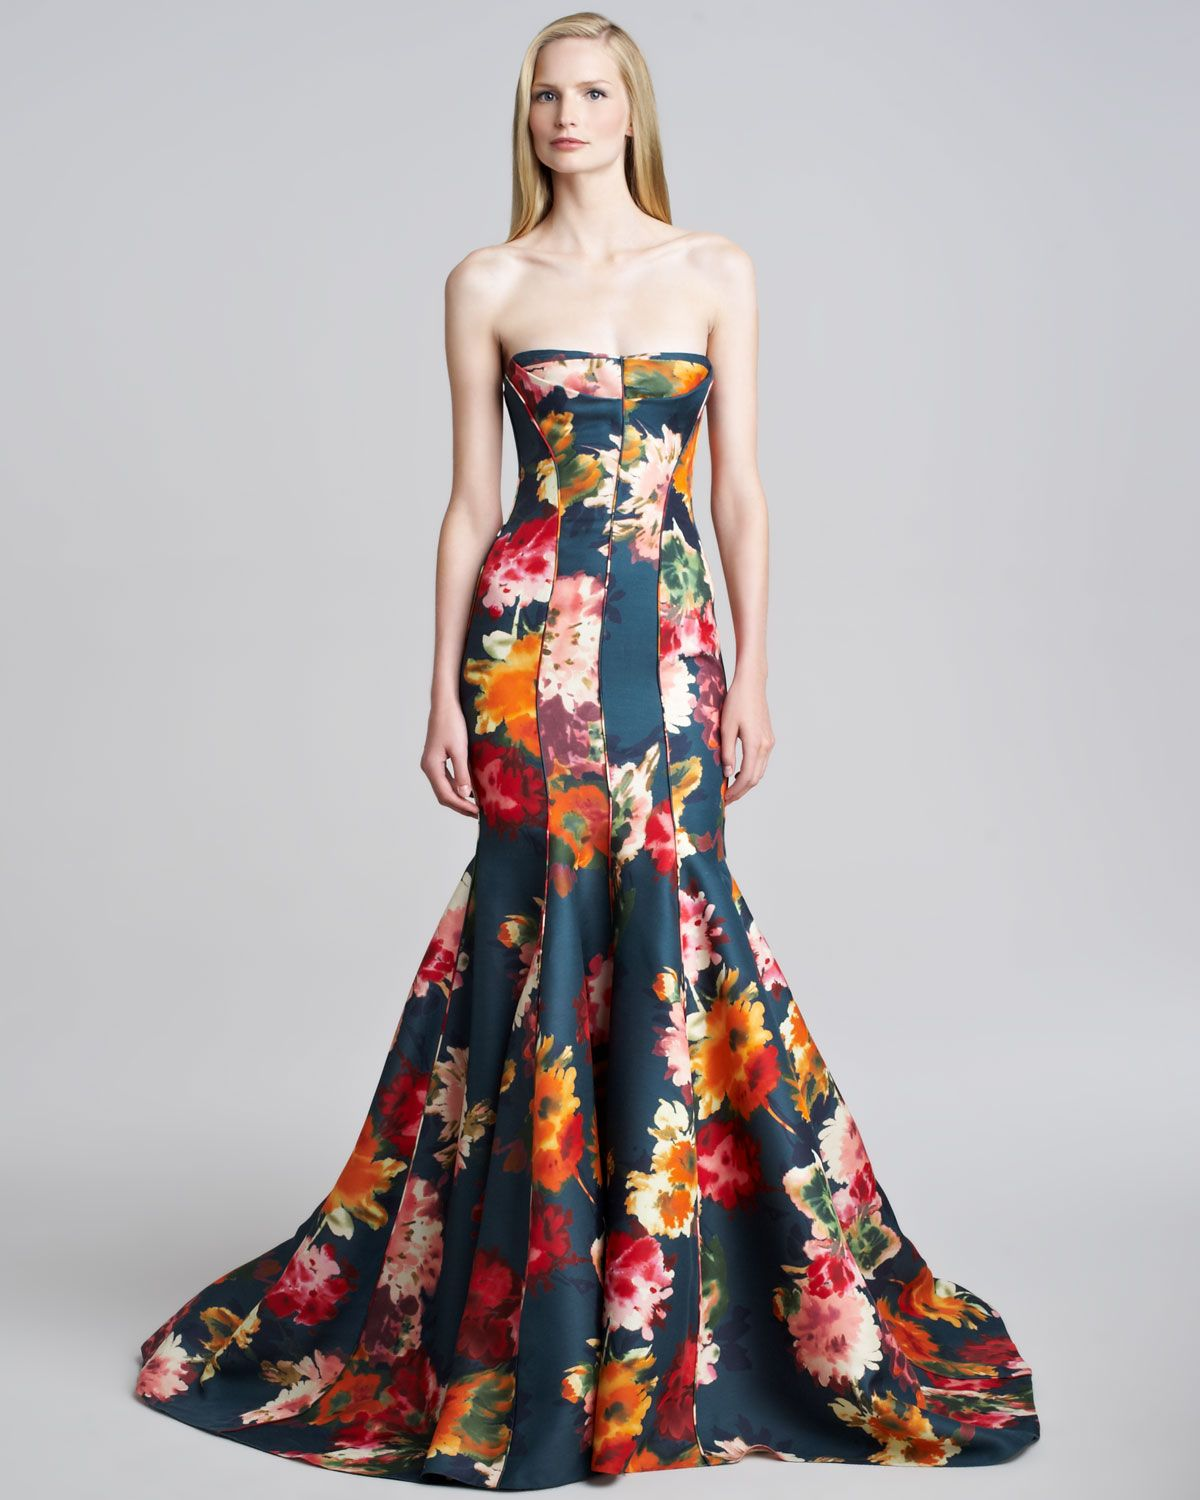 Floral gazar strapless gown neiman marcus i want to wear floral gazar strapless gown neiman marcus ombrellifo Choice Image